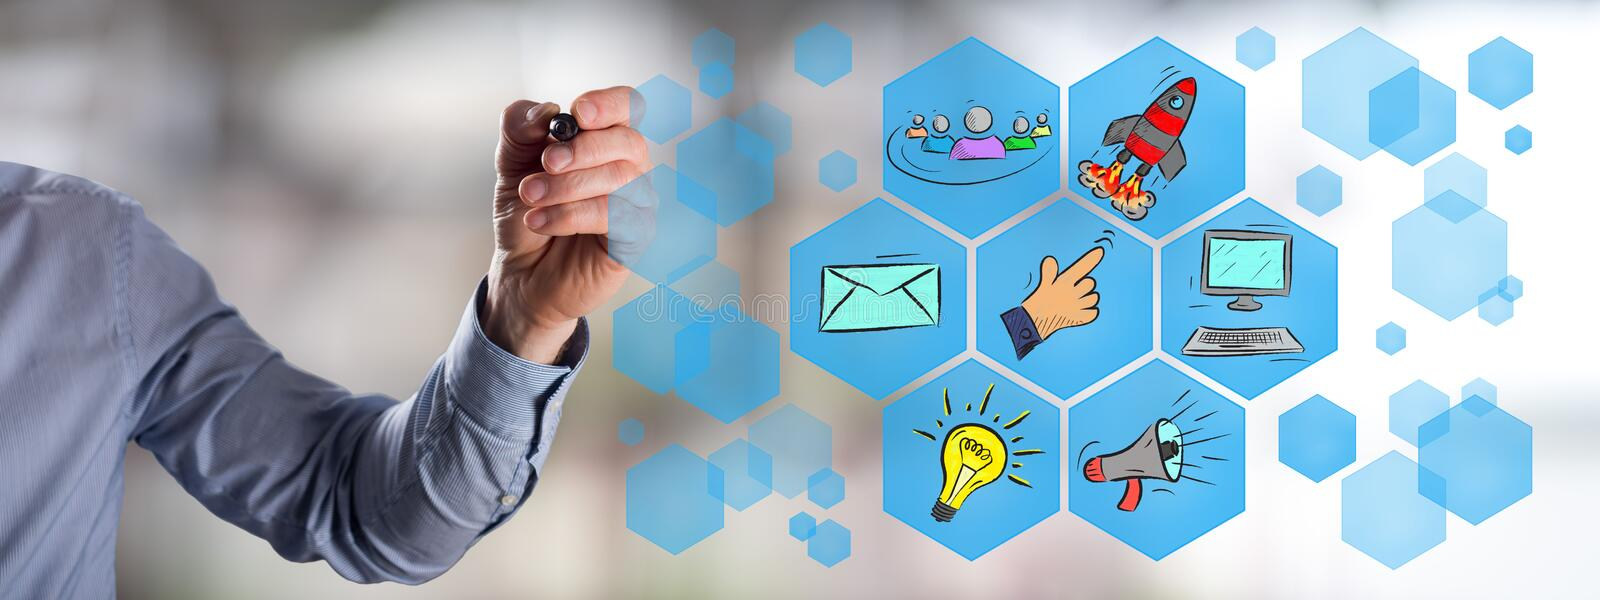 Digital marketing concept drawn by a man royalty free stock photos